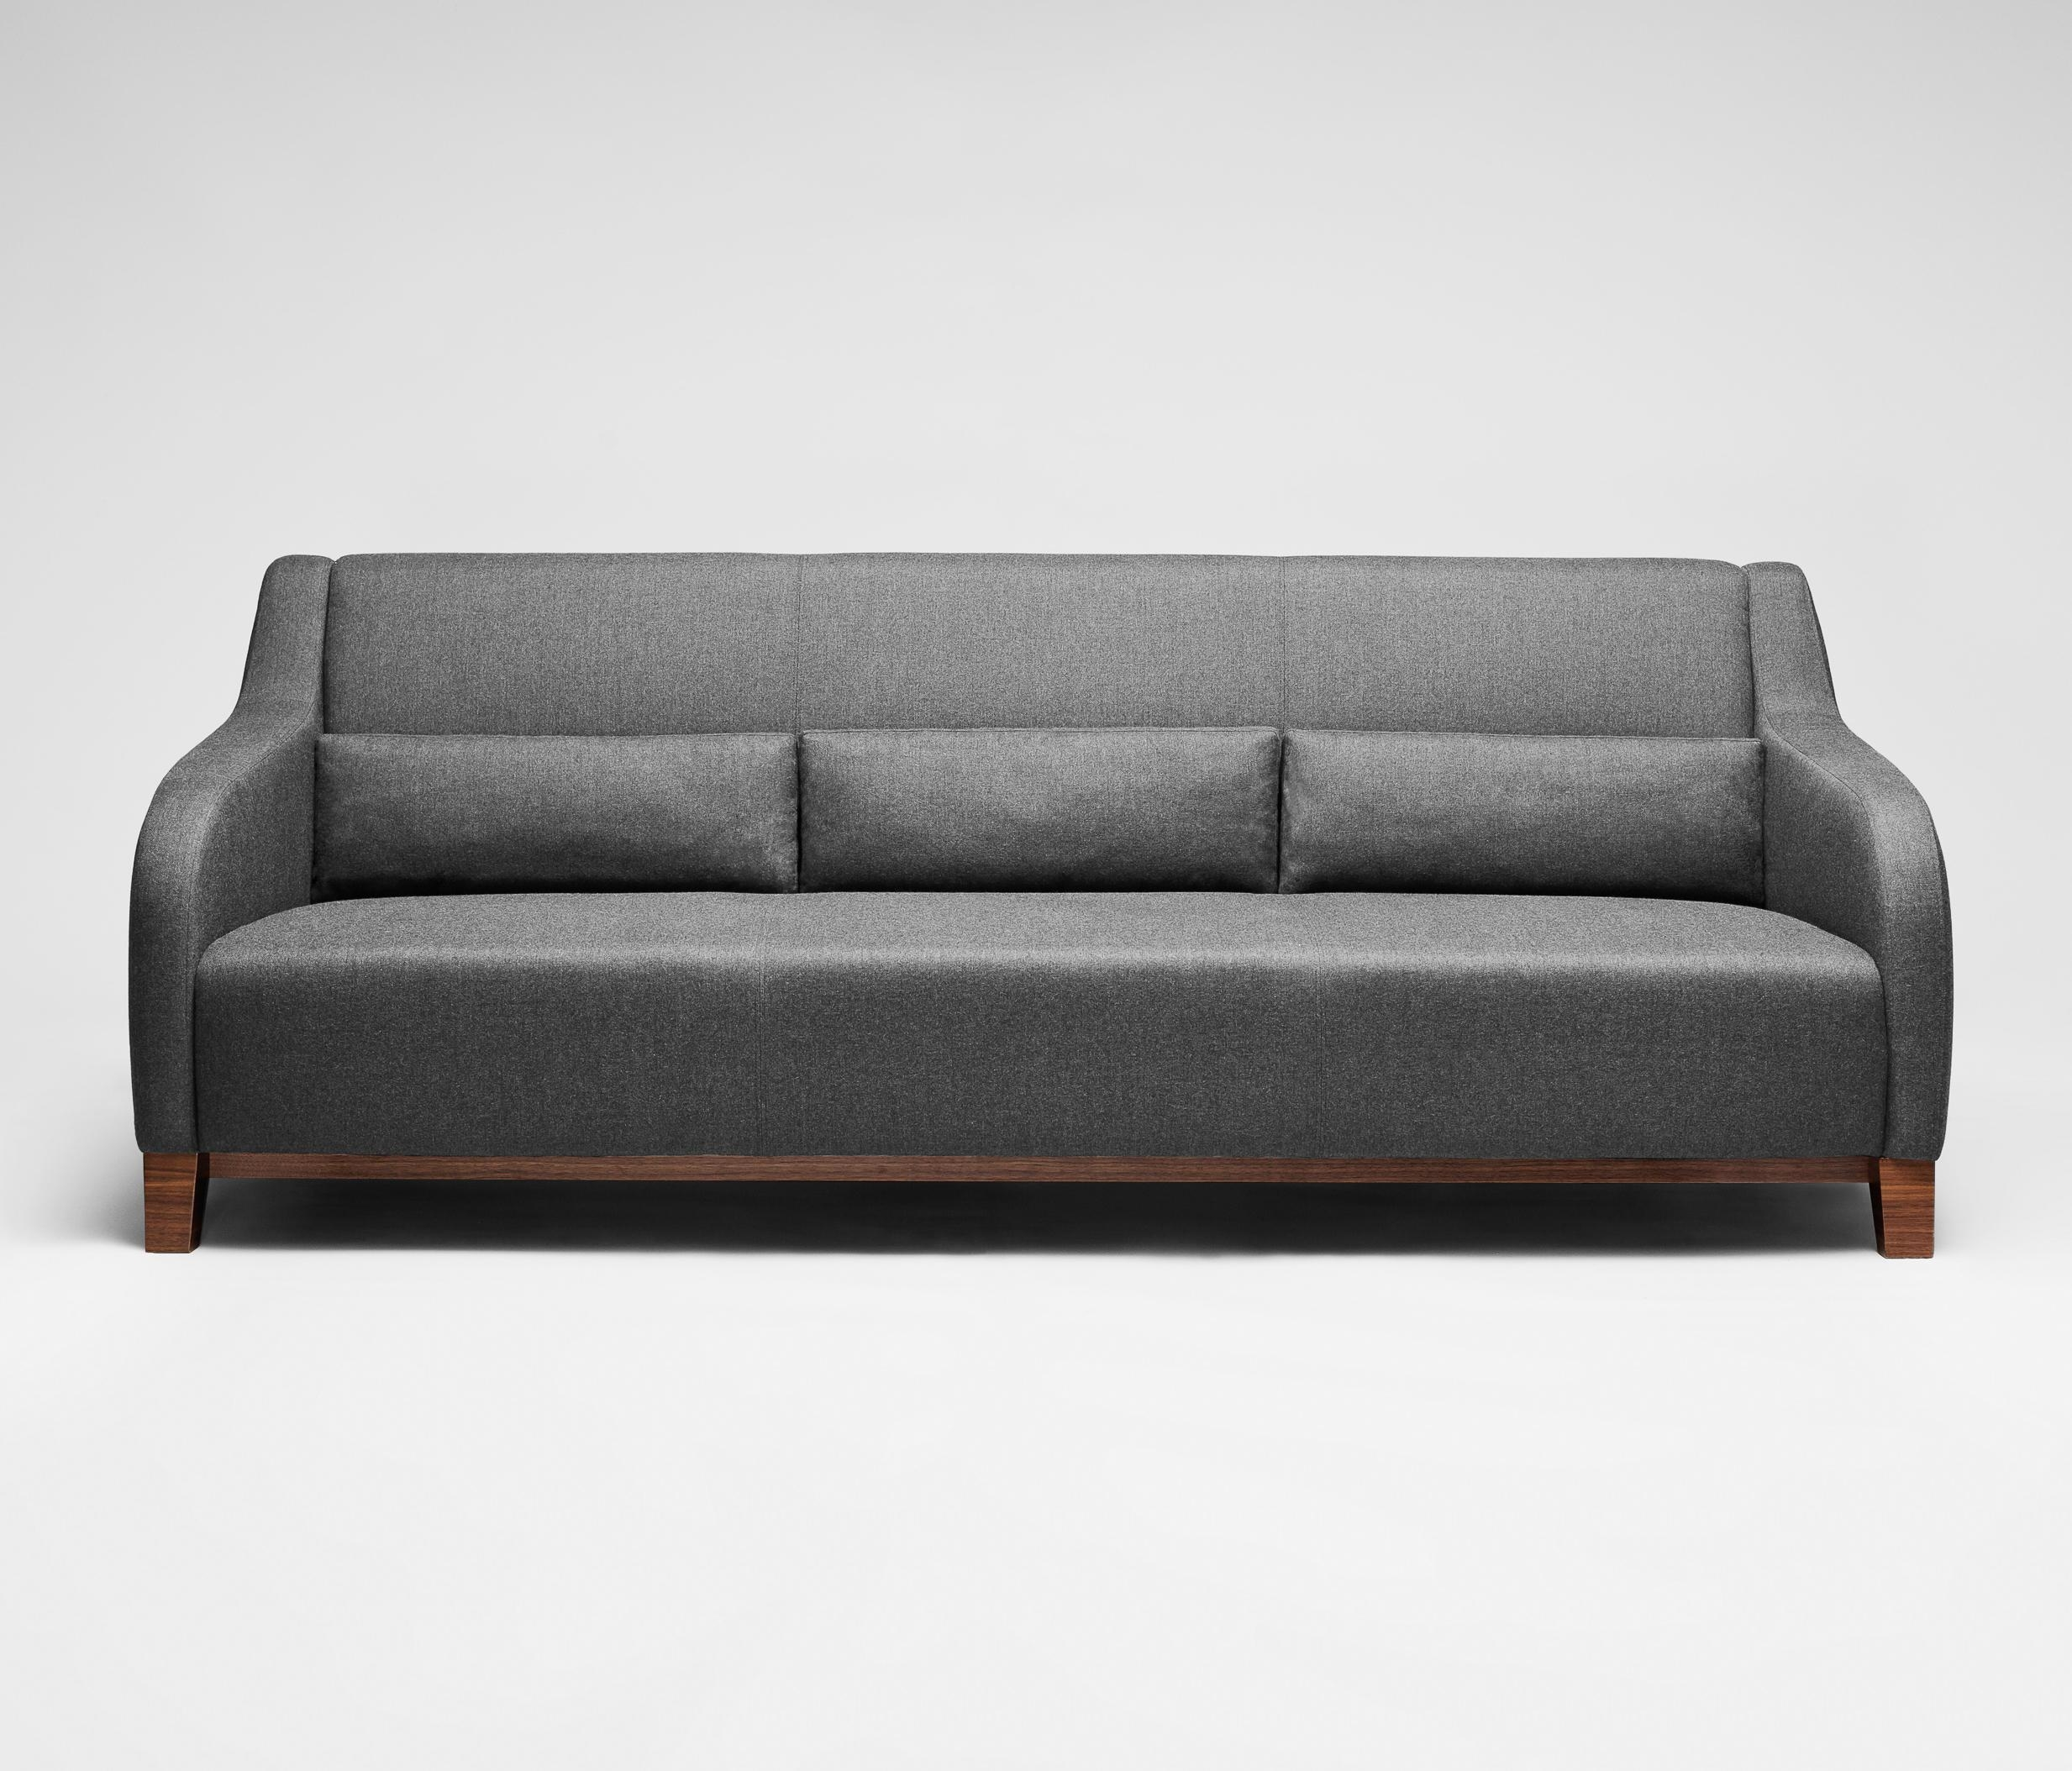 Collins Sofa – Lounge Sofas From Comforty | Architonic Intended For Collins Sofas (Image 7 of 20)